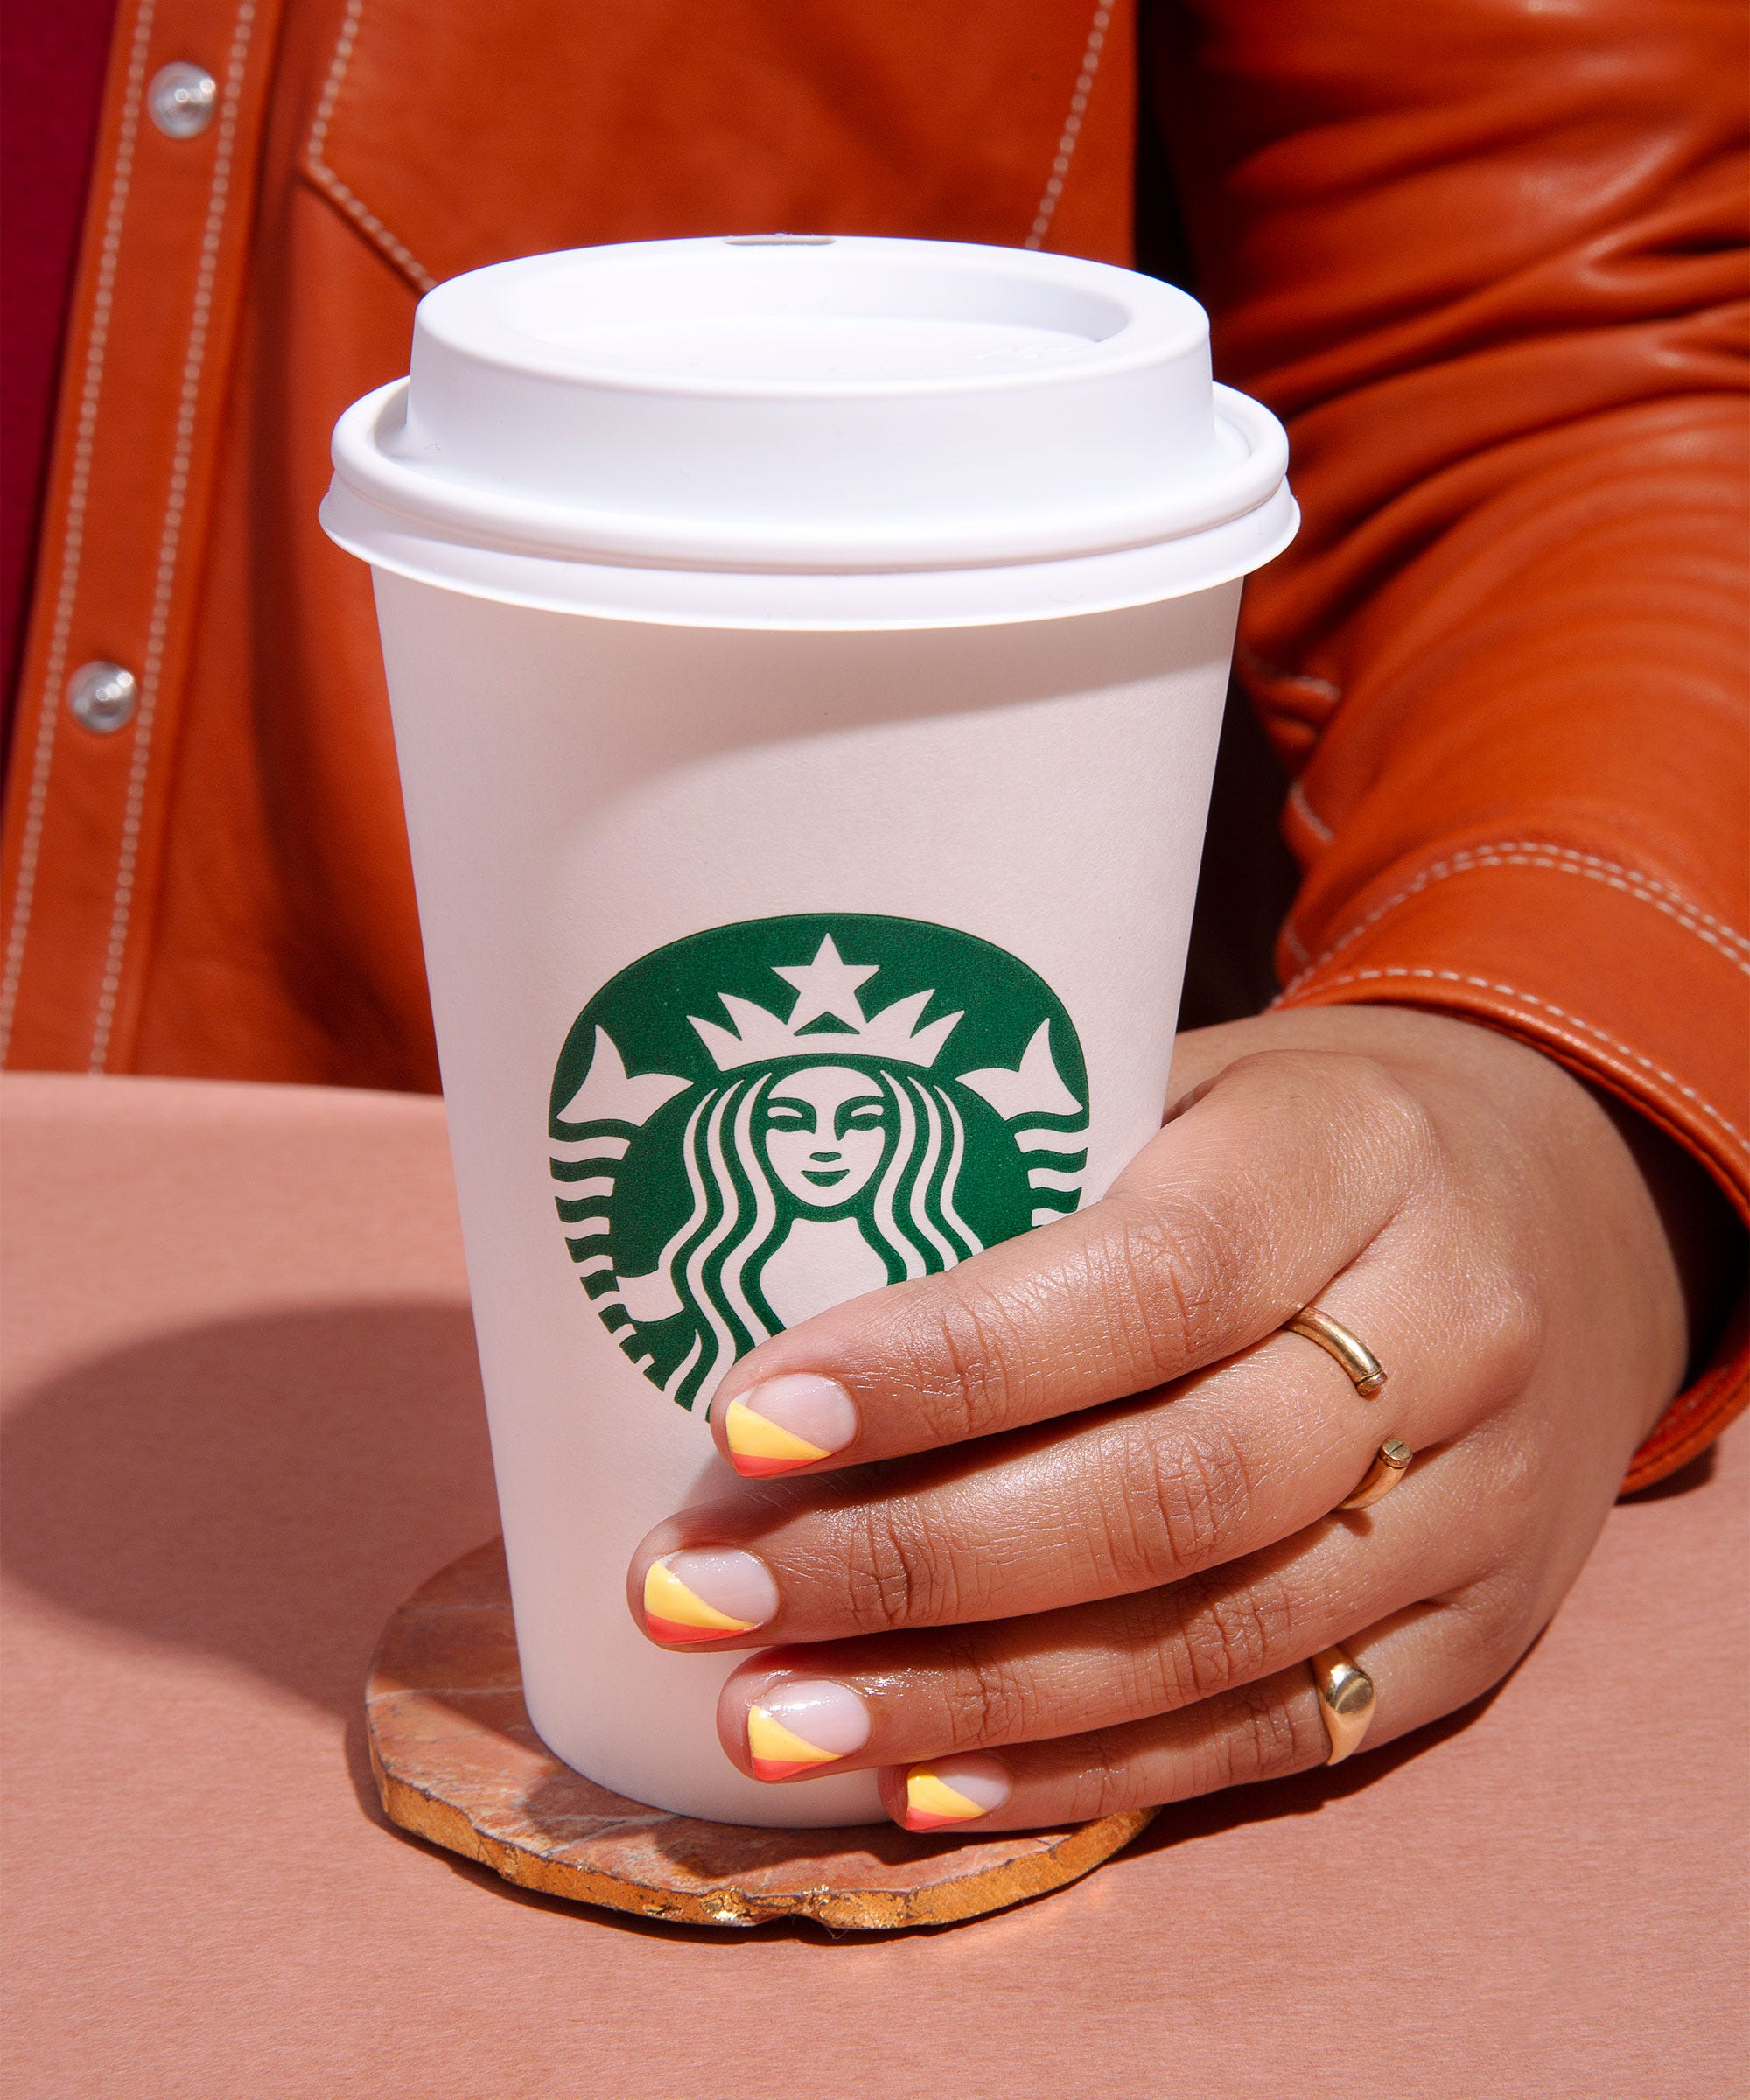 Starbucks Just Changed Its Rewards Program To Be More Like Sephora's